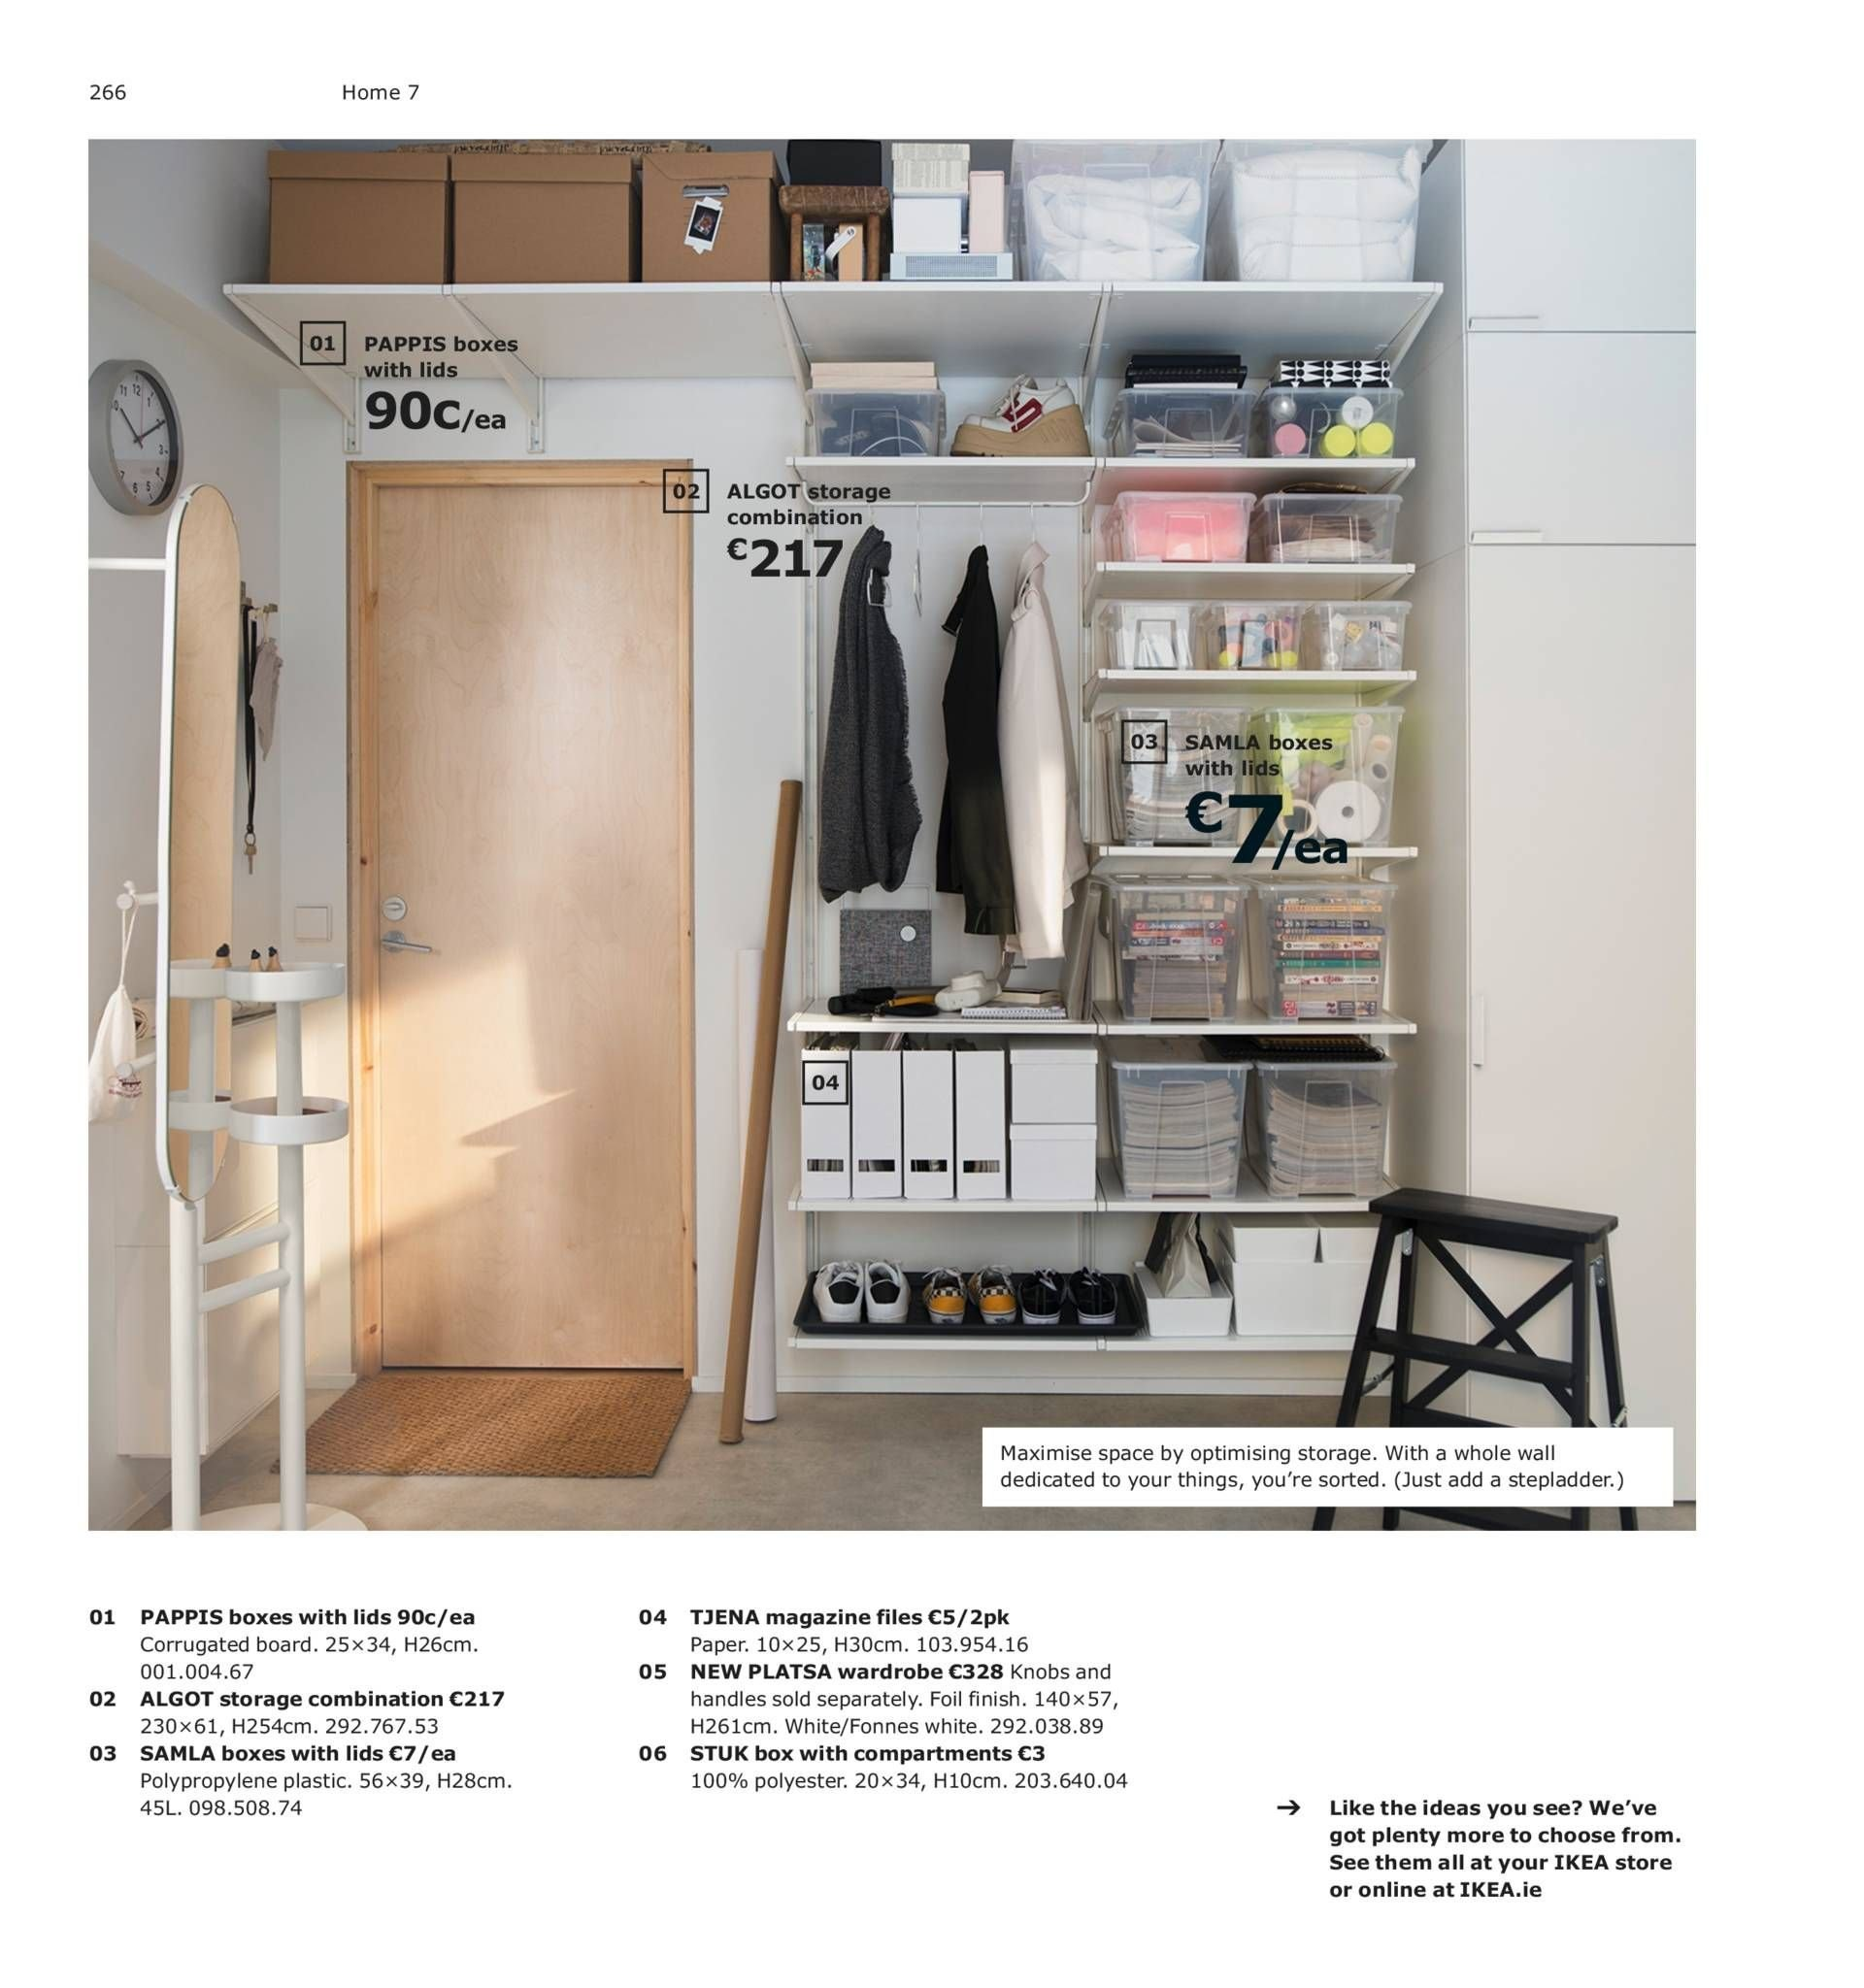 IKEA offer  - 13.8.2018 - 31.7.2019 - Sales products - box, boxes with lids, knob, stepladder, storage, wardrobe, handles, paper, board. Page 266.